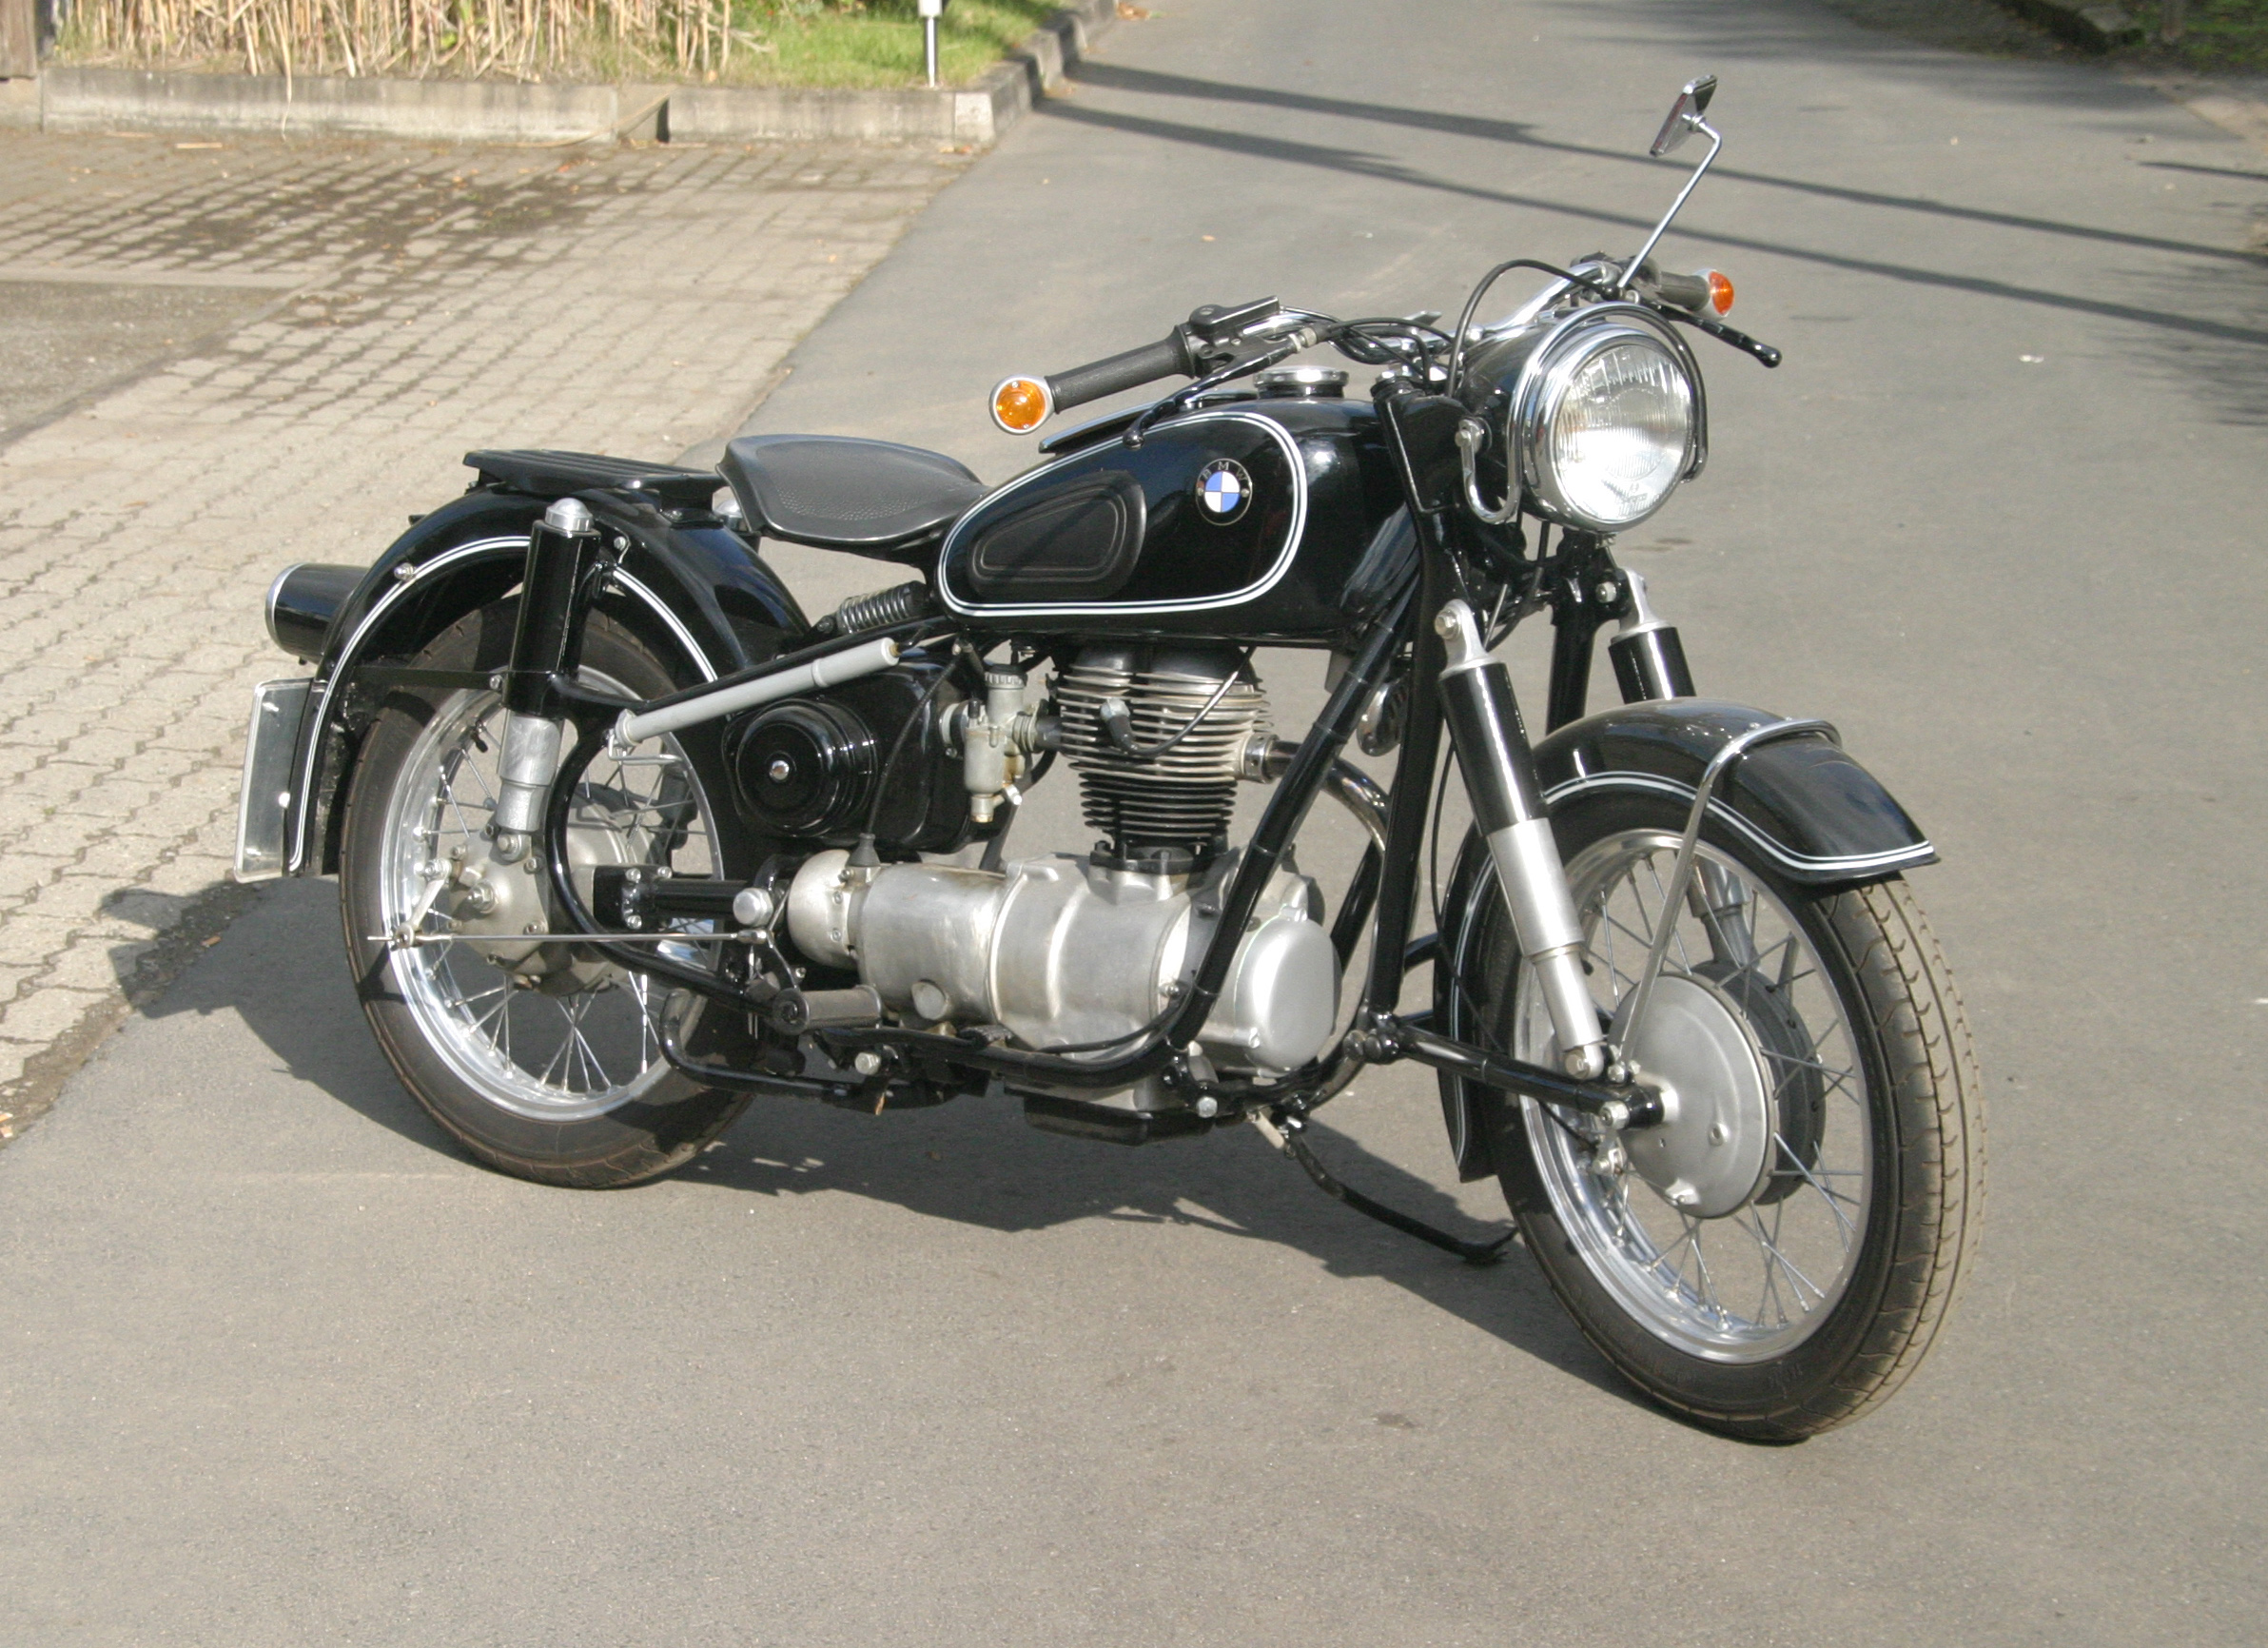 pin willkommen bei omega oldtimer awo bmw emw motorrad on pinterest. Black Bedroom Furniture Sets. Home Design Ideas